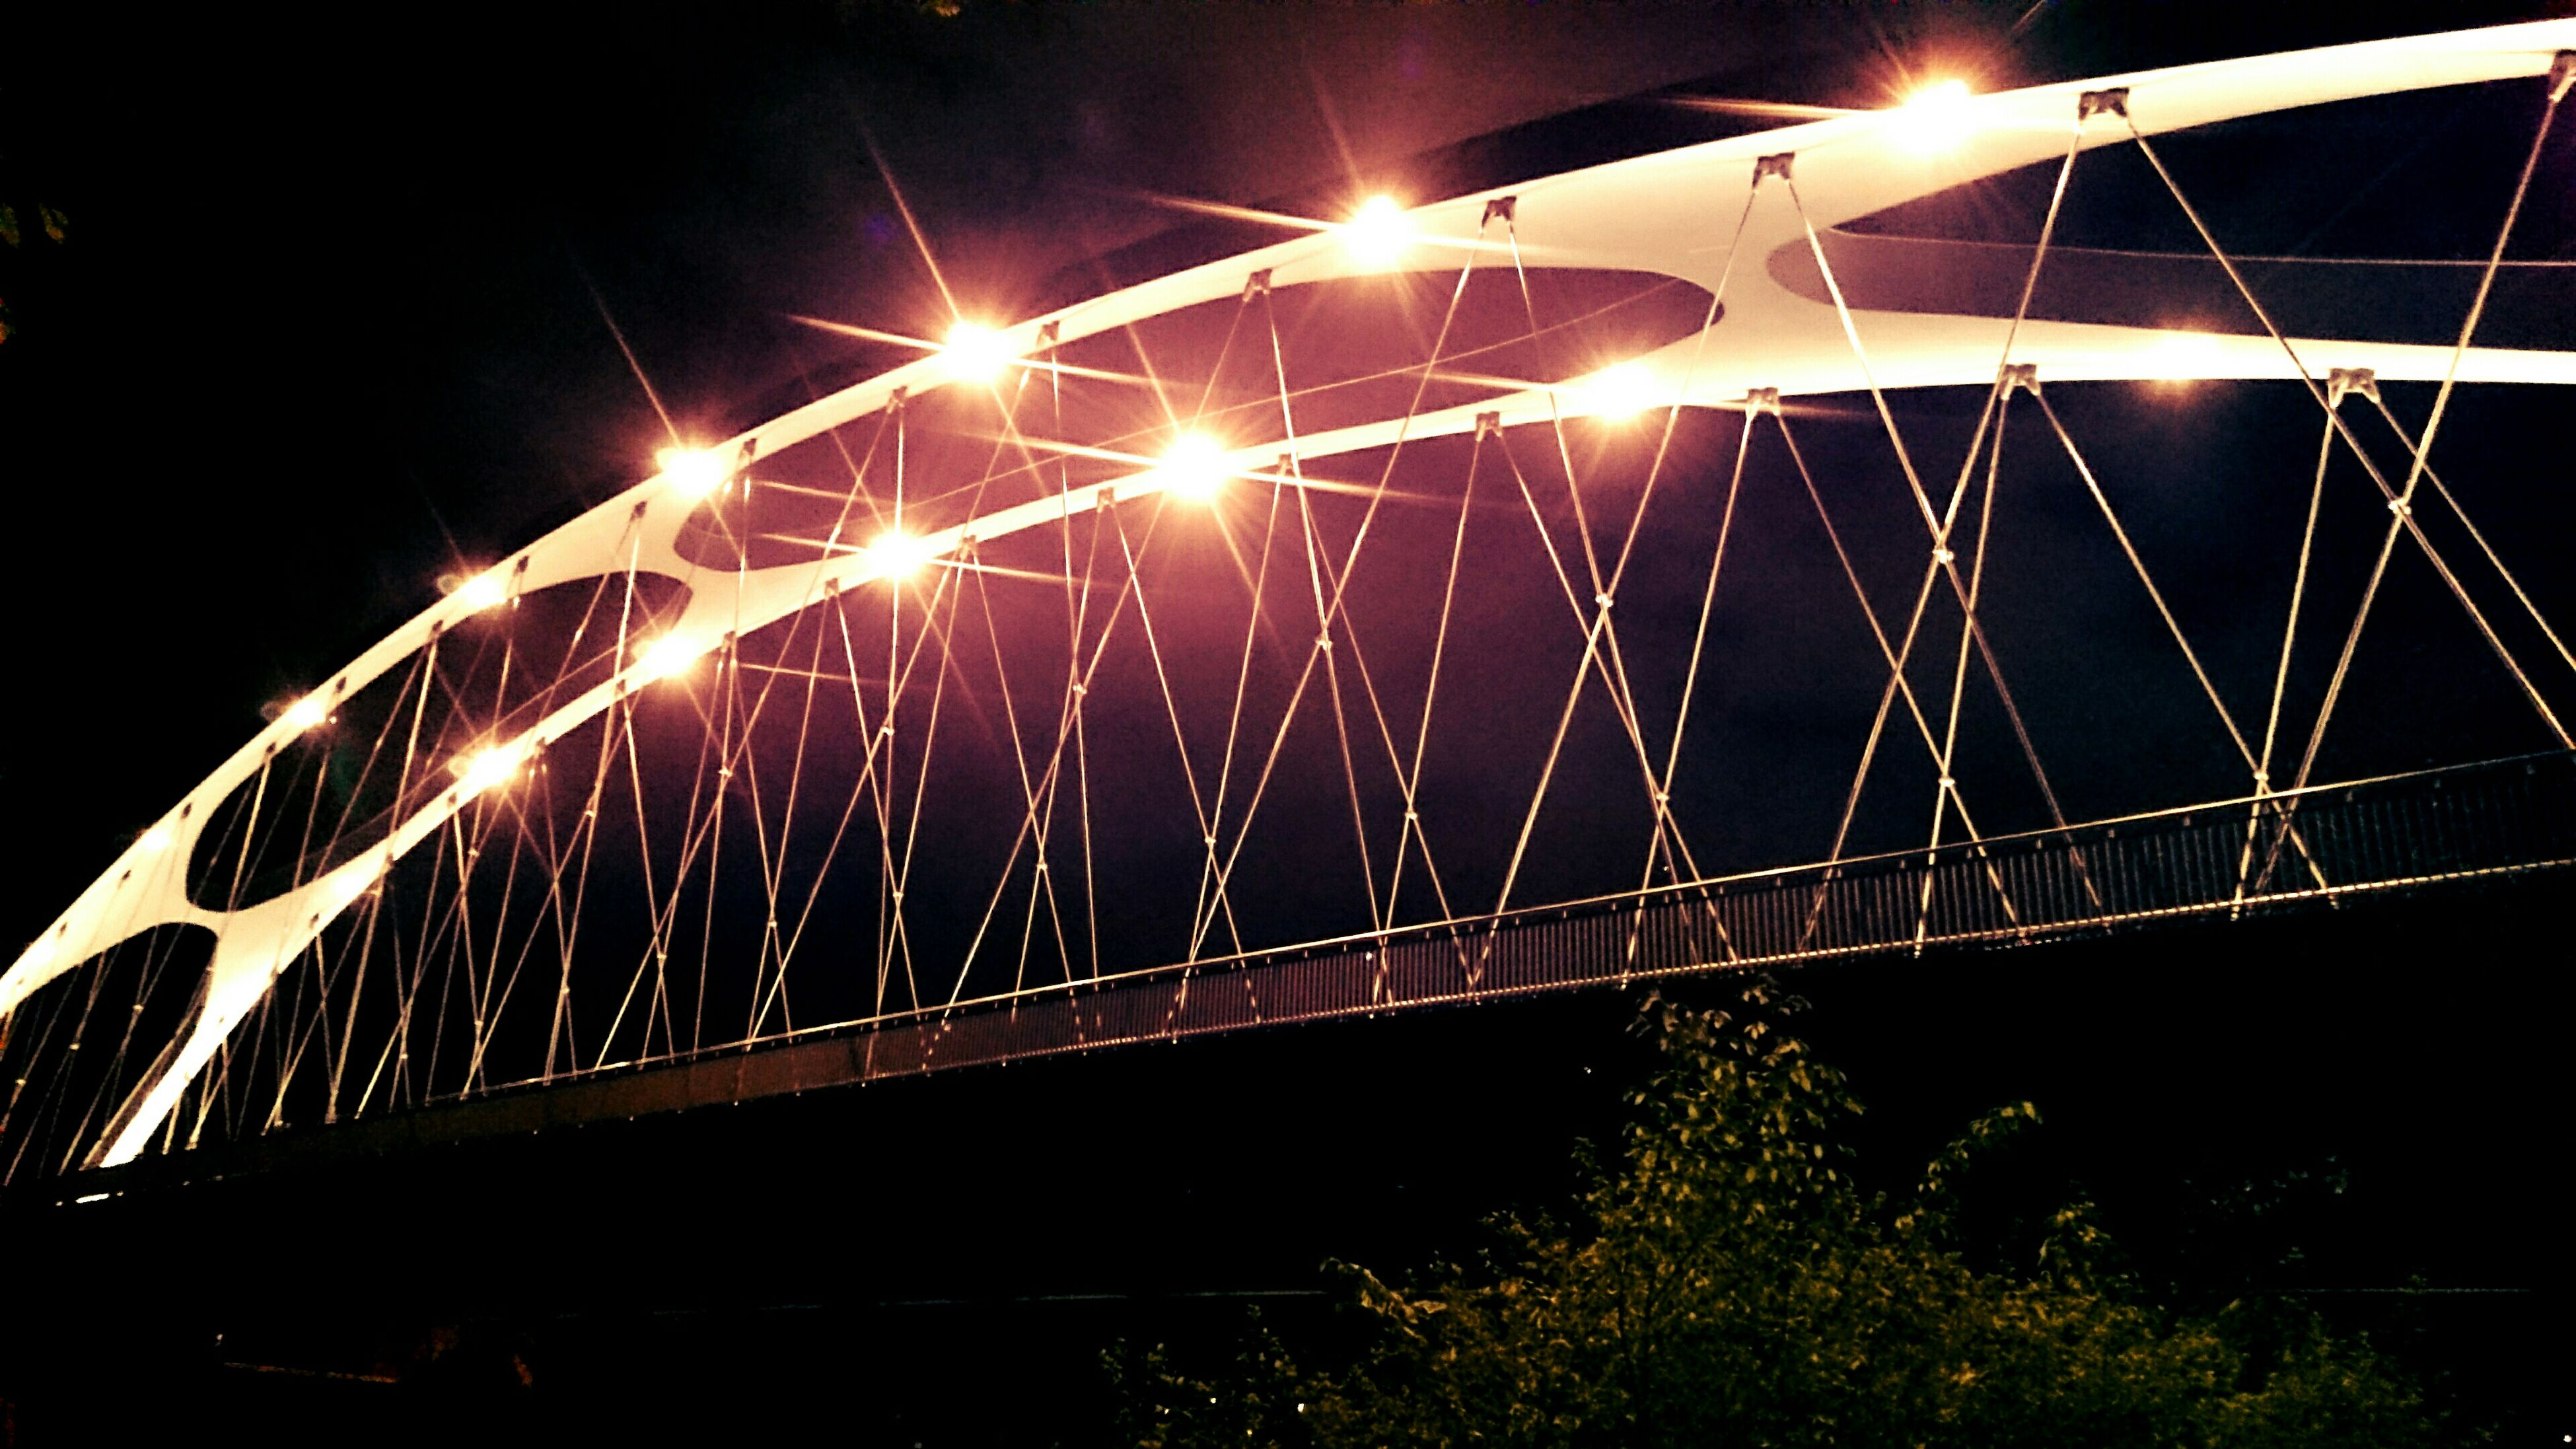 night, illuminated, bridge - man made structure, connection, built structure, architecture, transportation, engineering, low angle view, bridge, arch, street light, city, outdoors, sky, no people, railing, lighting equipment, light trail, reflection